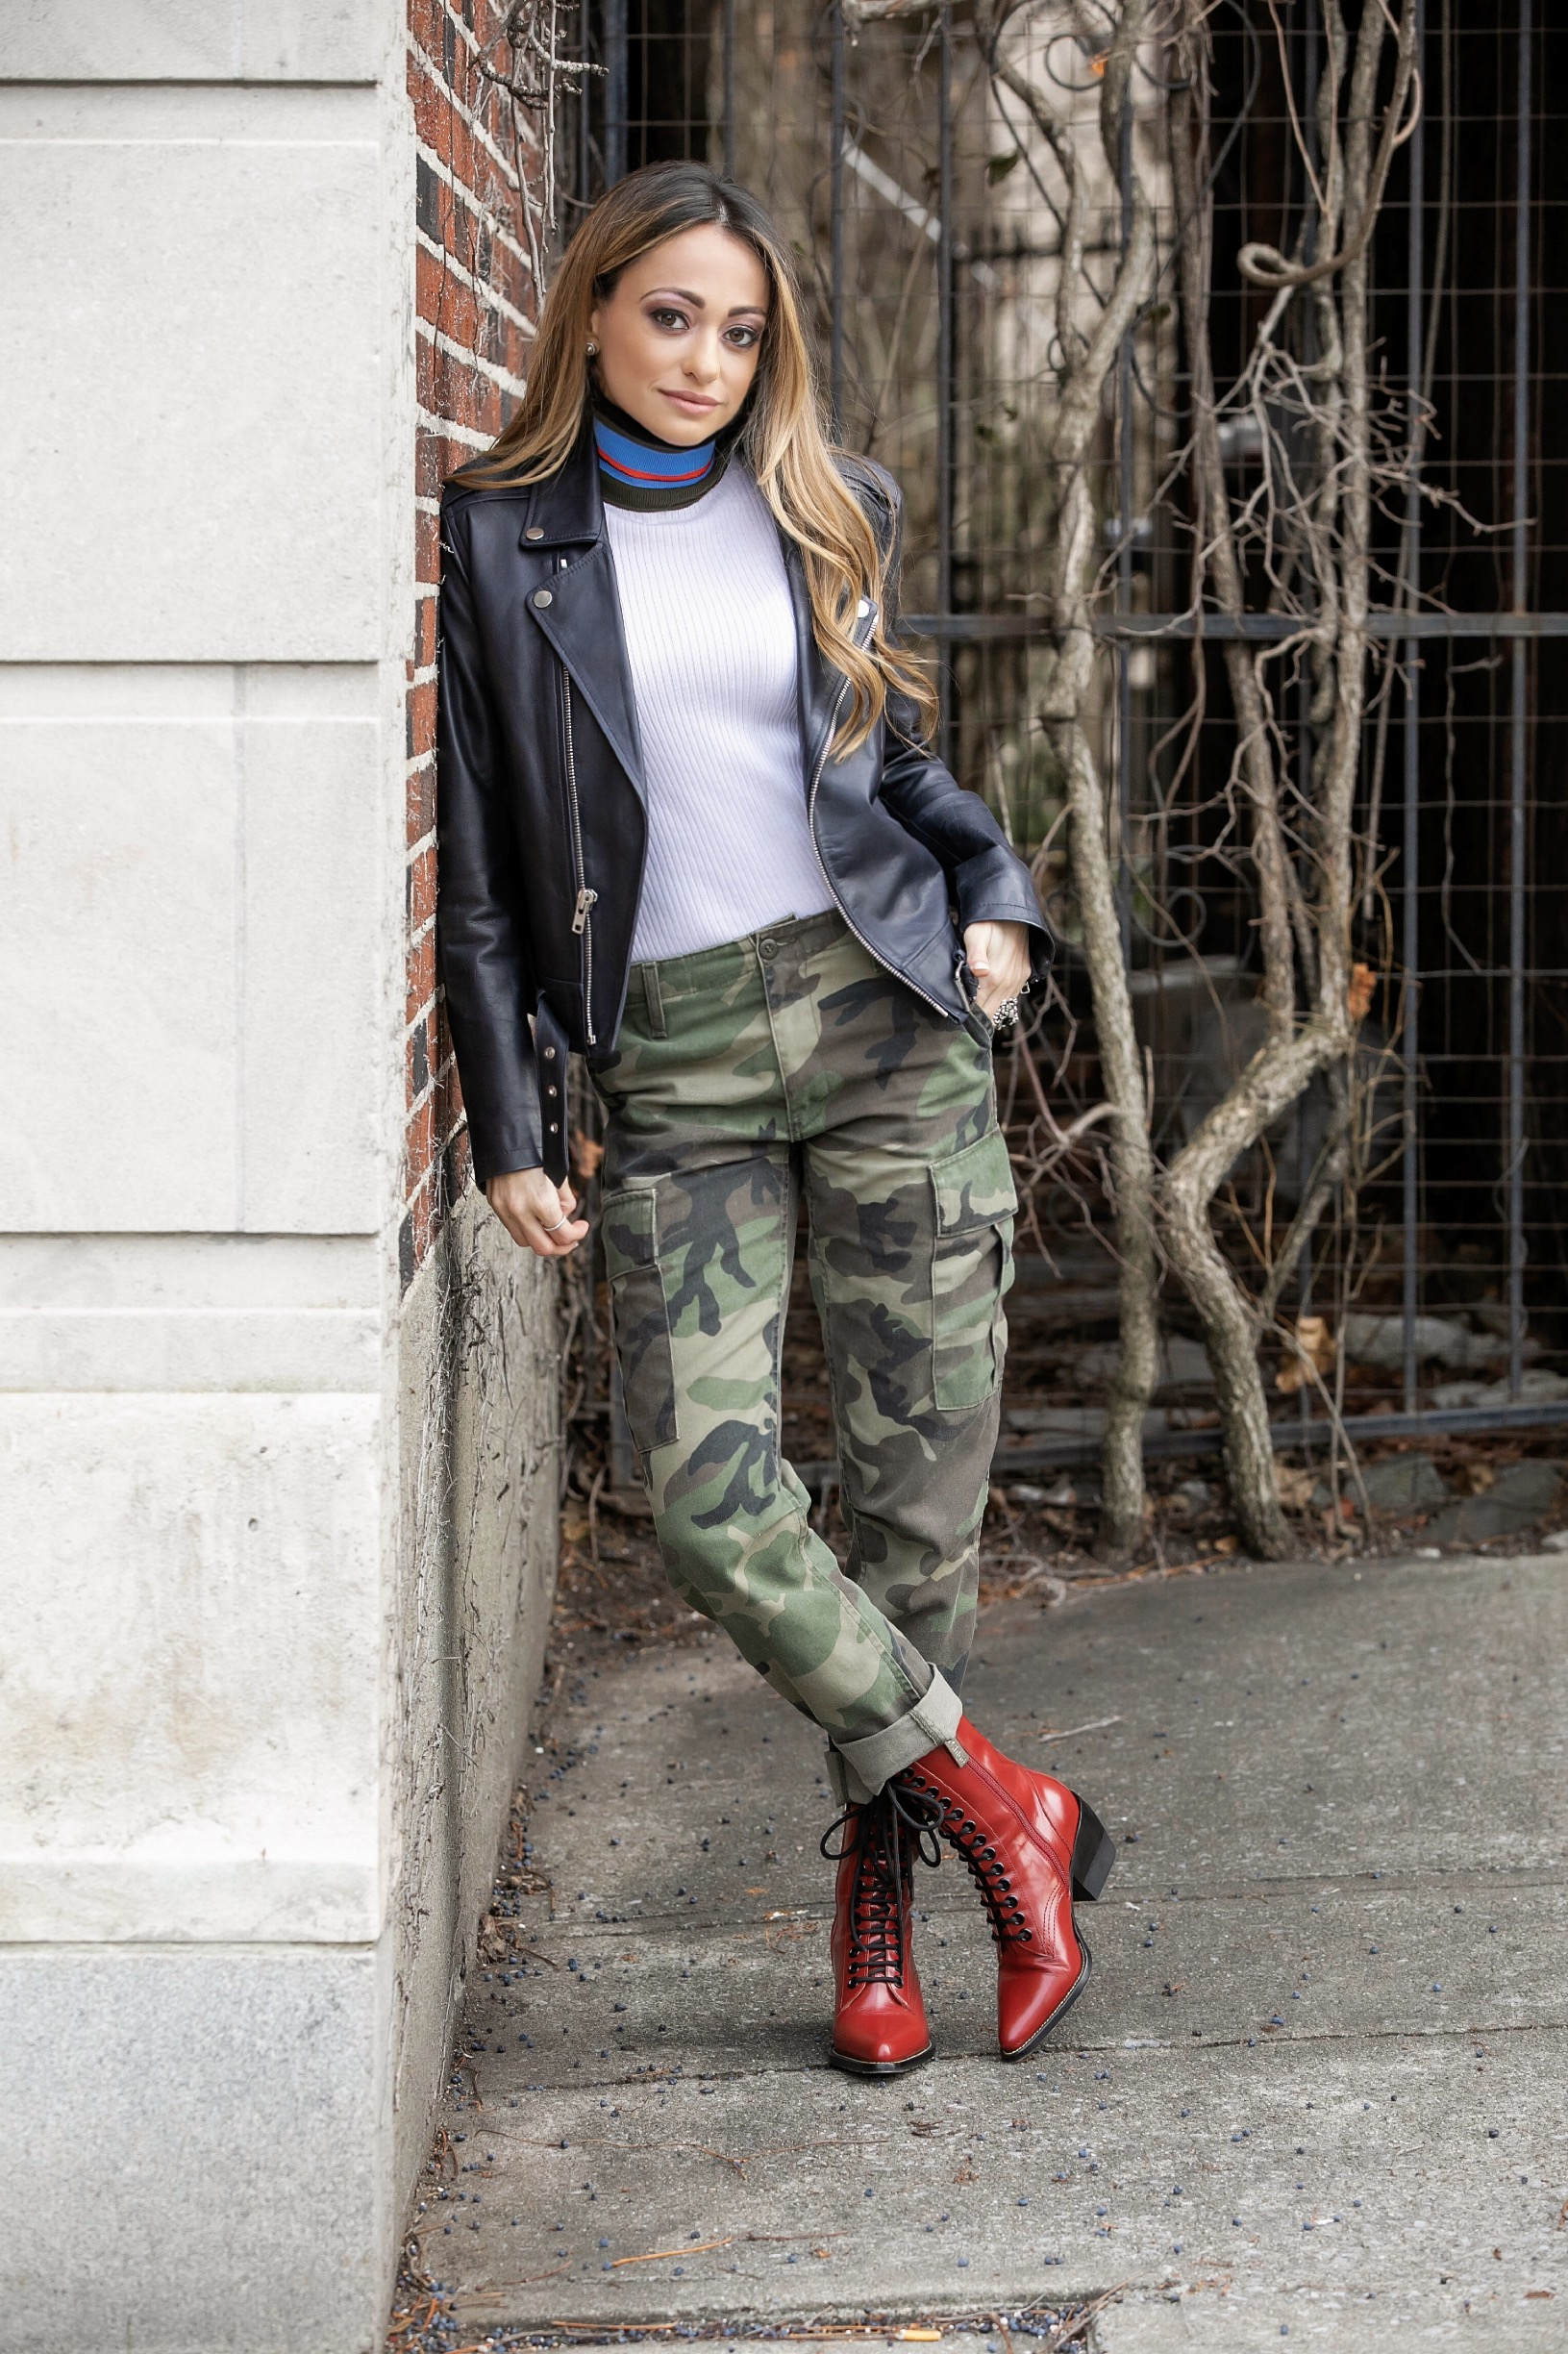 proenza schouler ribbed turtleneck, re/done camo cargo pants, theory leather jacket, chloe boots